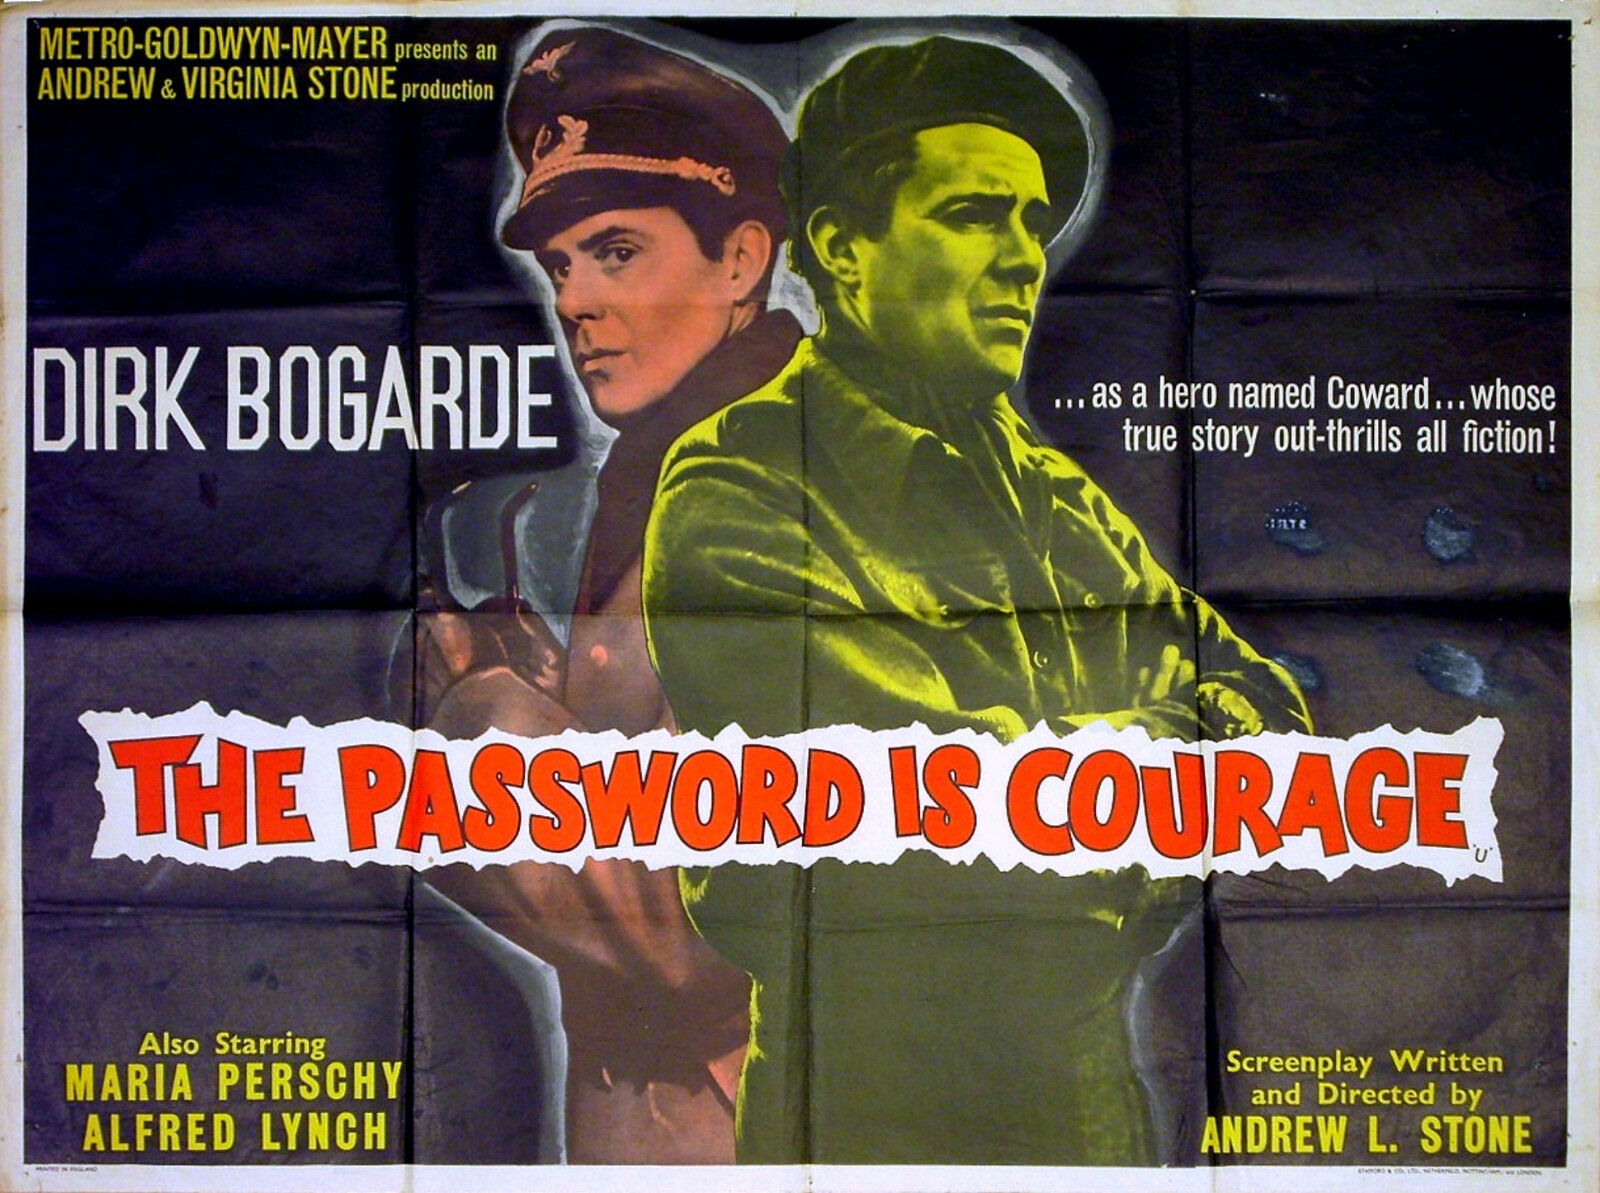 War Movie - The Password Is Courage (1962)